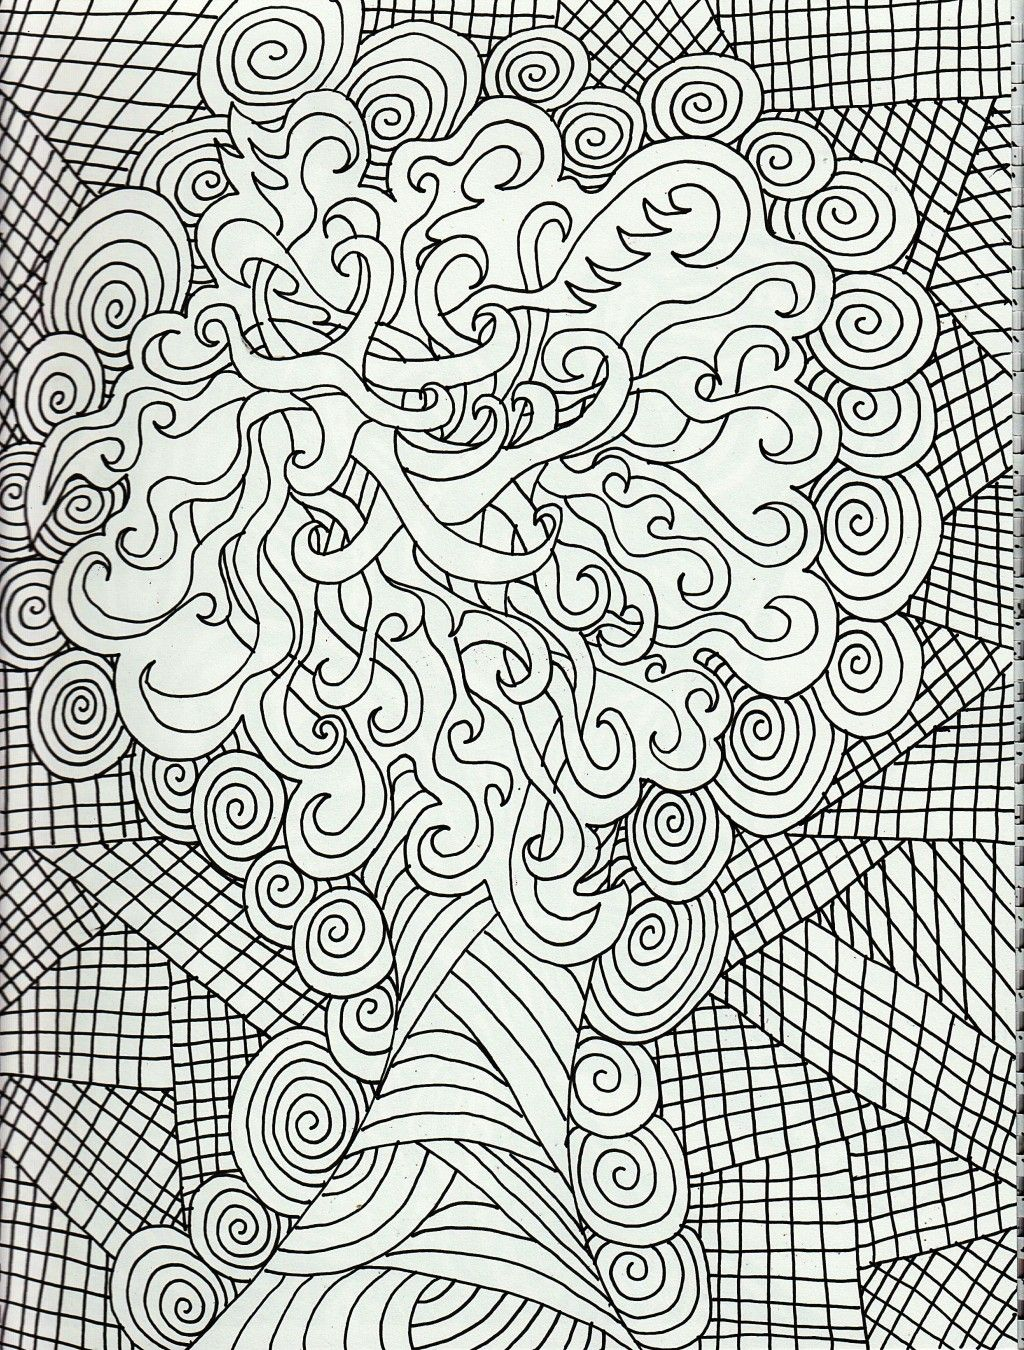 Detailed Coloring Pages Pdf : Adult coloring pages deer free color detailed